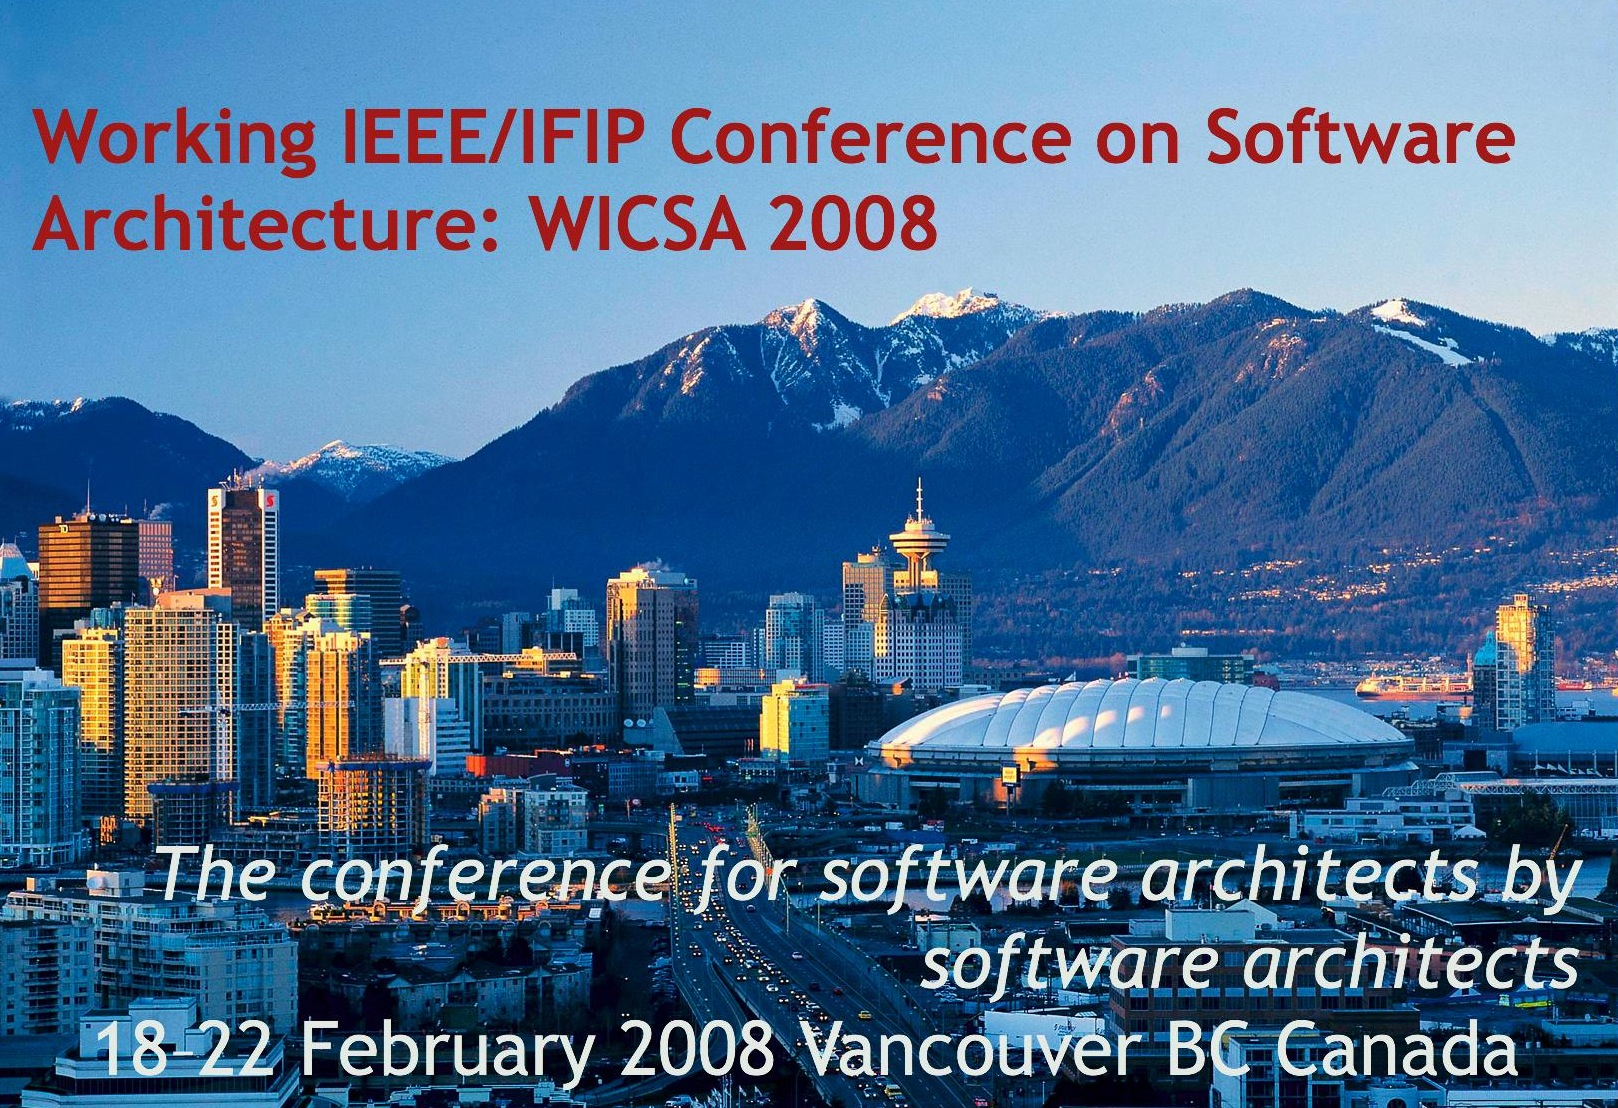 WICSA 2008 18-22 February 2008, Vancouver, BC